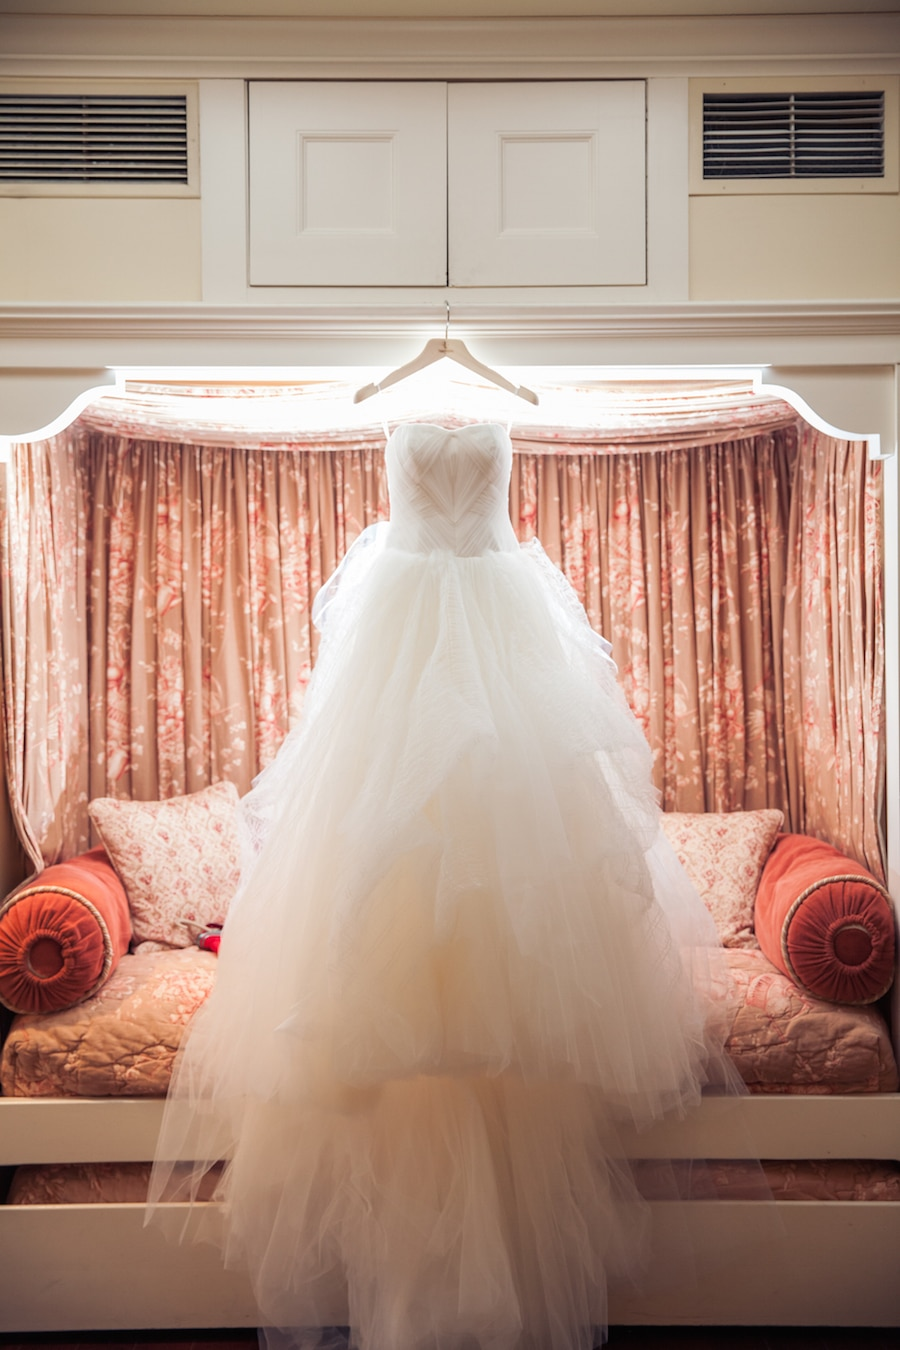 beautiful wedding gown hanging with light shinning through